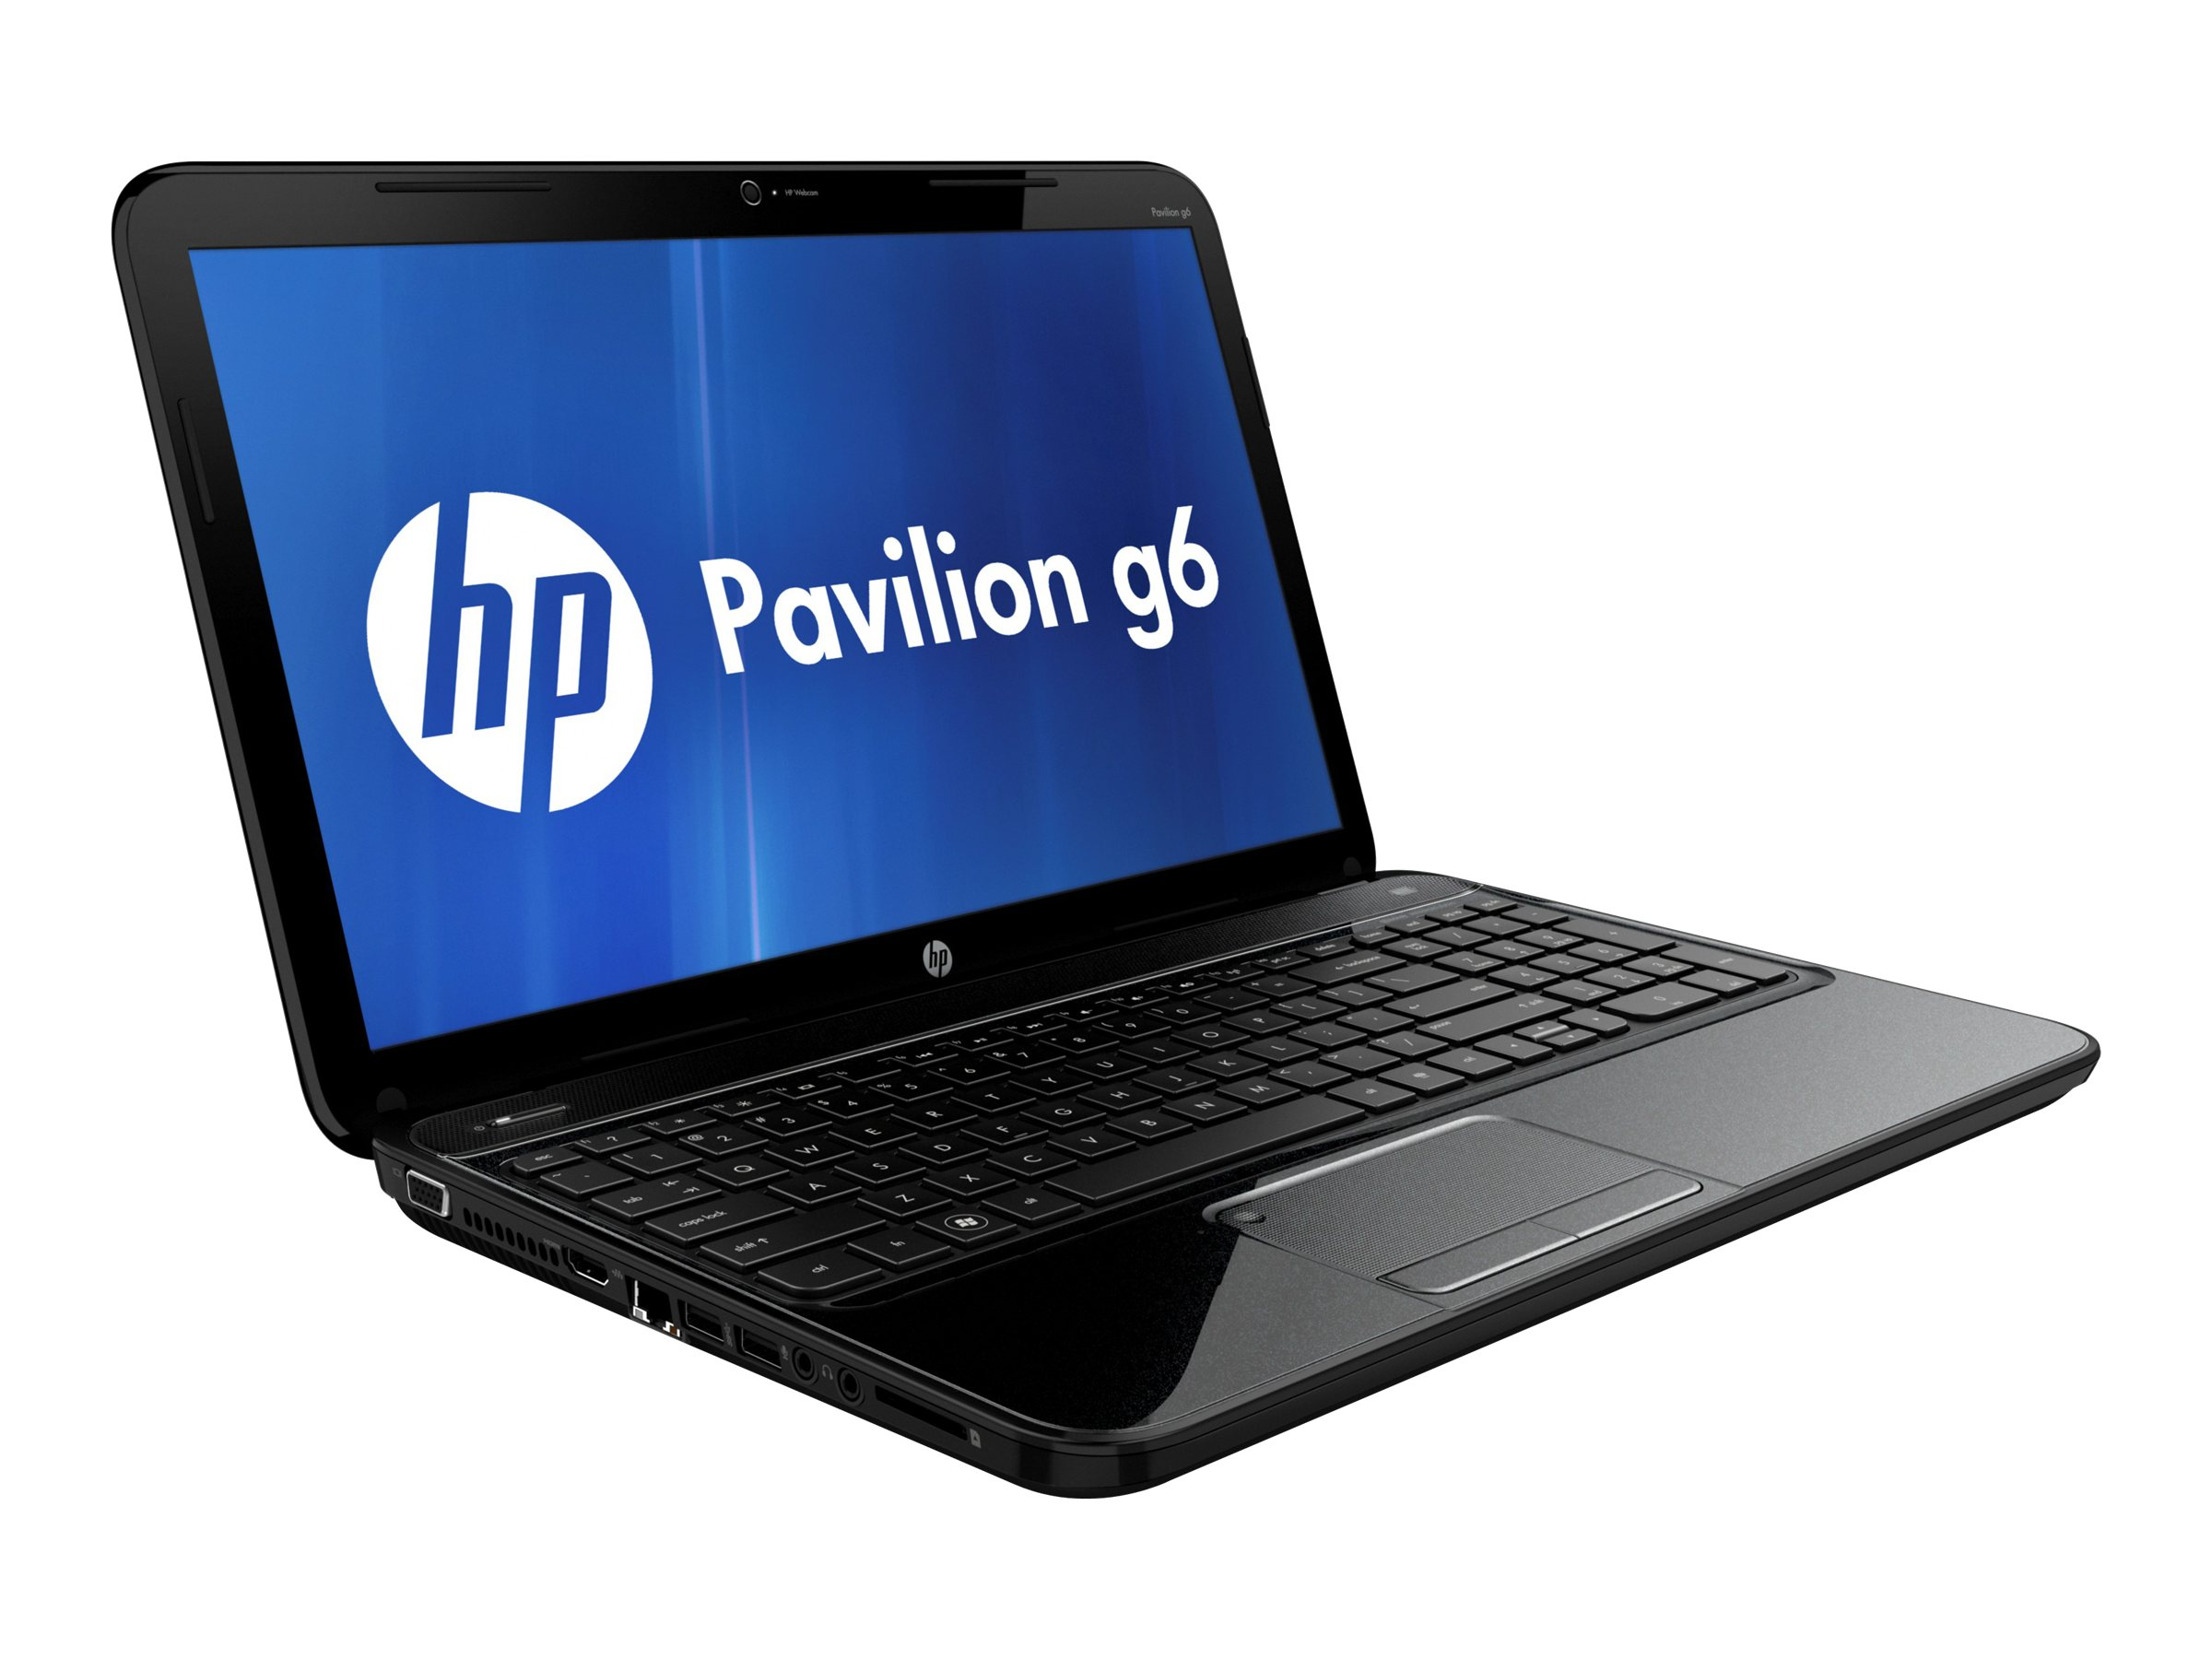 HP Pavilion G6-2129nr : 2.5GHz Core i5 15.6in display, B5A37UA#ABA